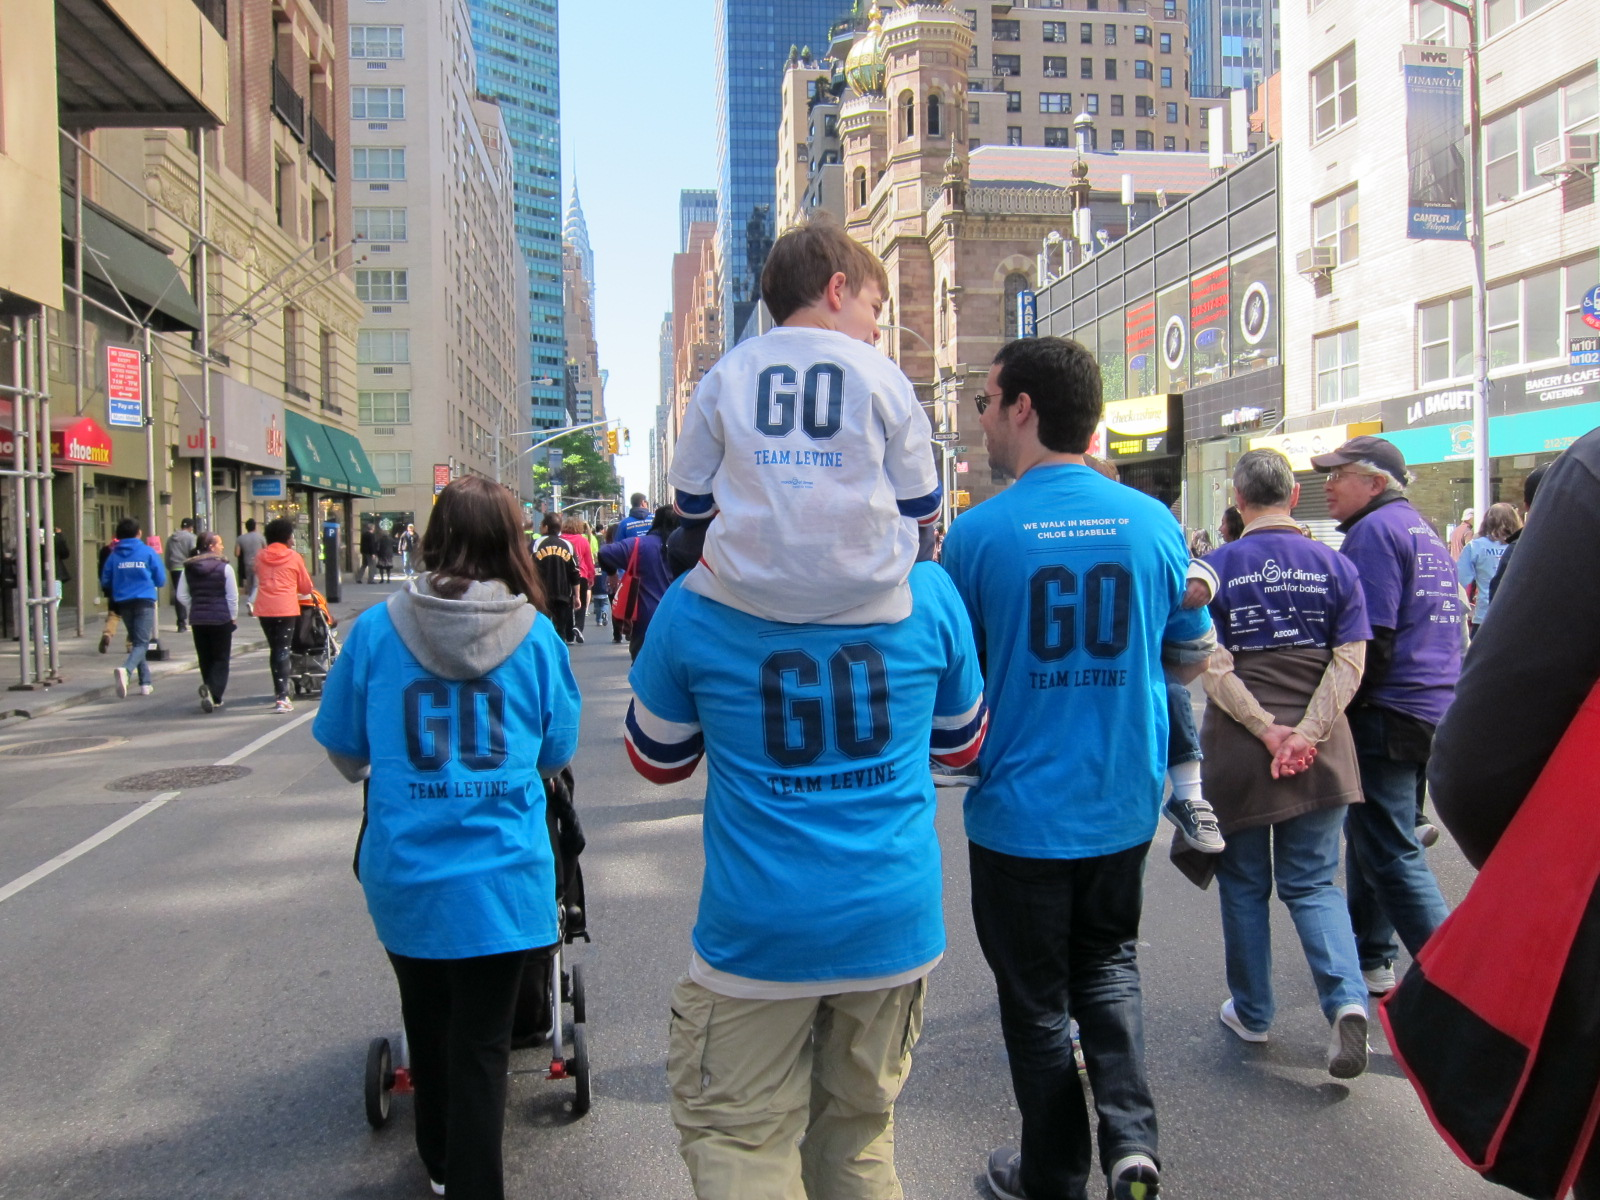 team-levine-walkers-at-the-2012-march-for-babies-walk_8539153991_o.jpg